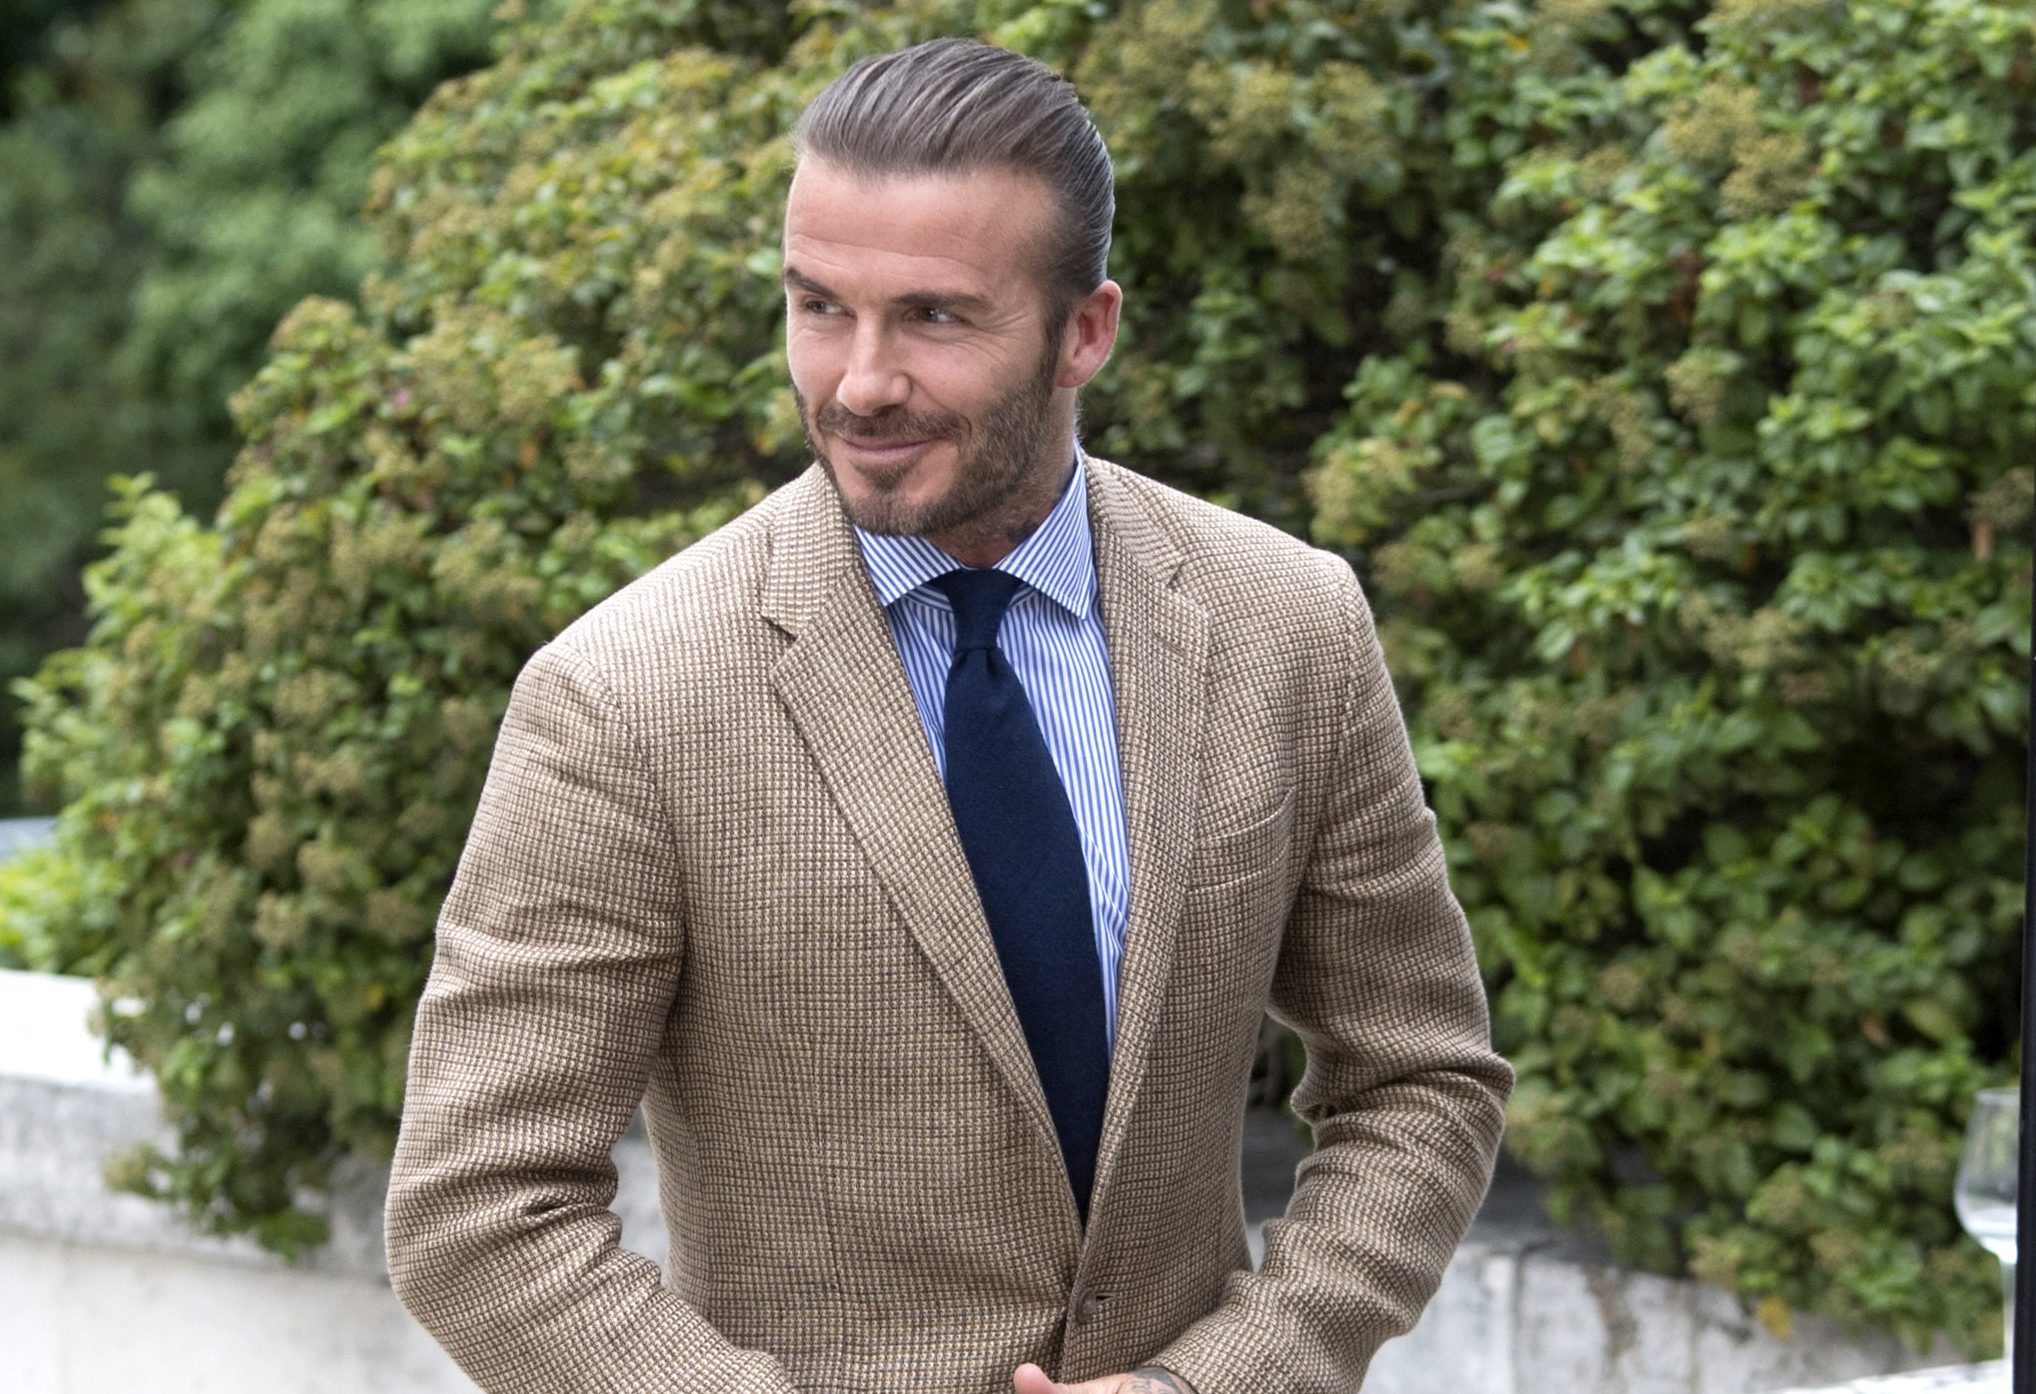 David Beckham reportedly loses it after fan tries to take photo of him at Glastonbury